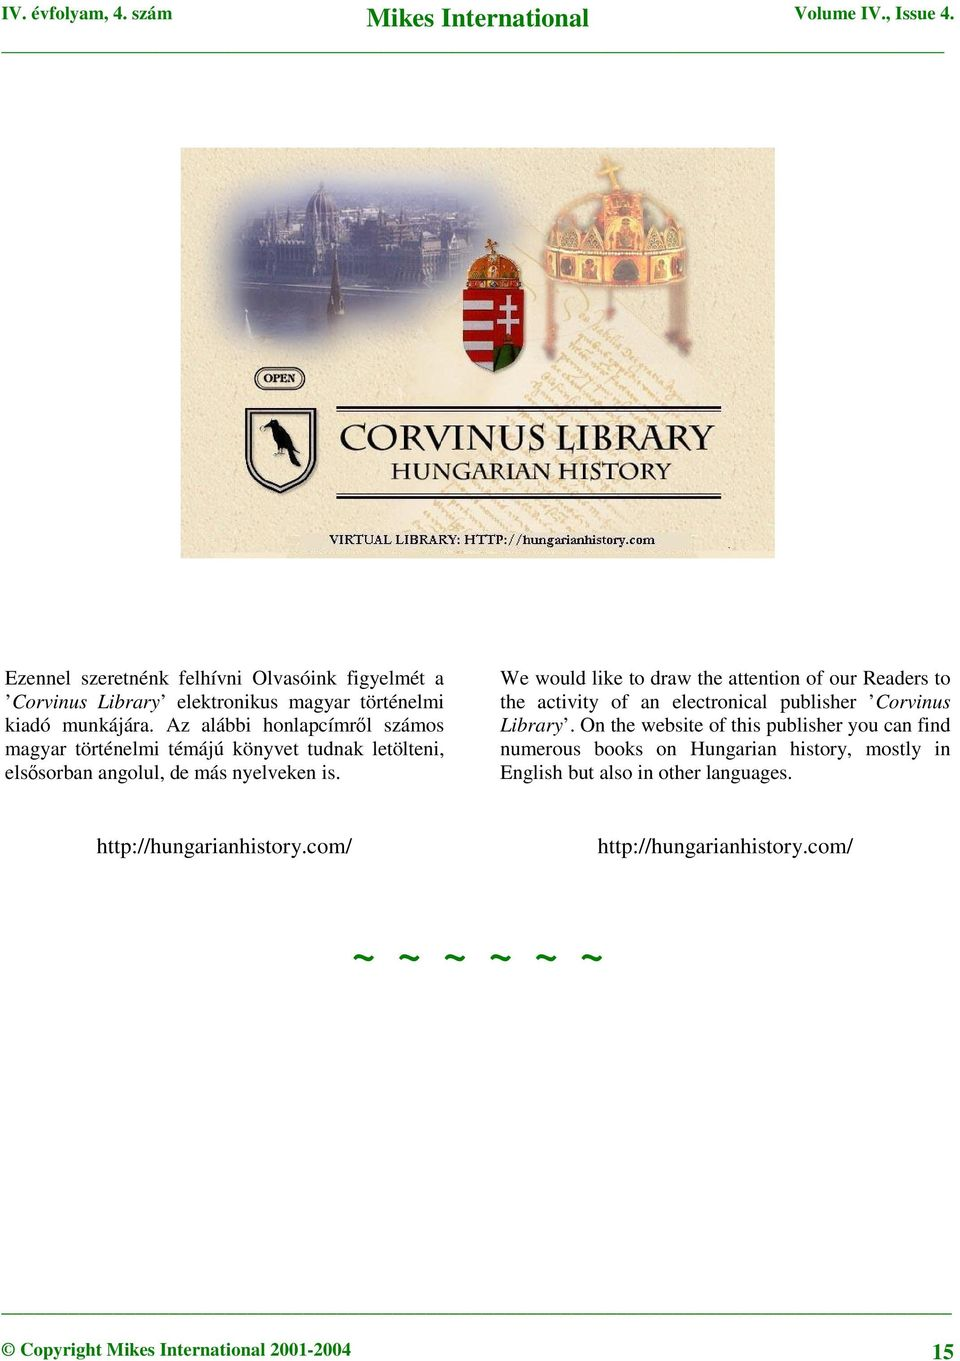 We would like to draw the attention of our Readers to the activity of an electronical publisher Corvinus Library.